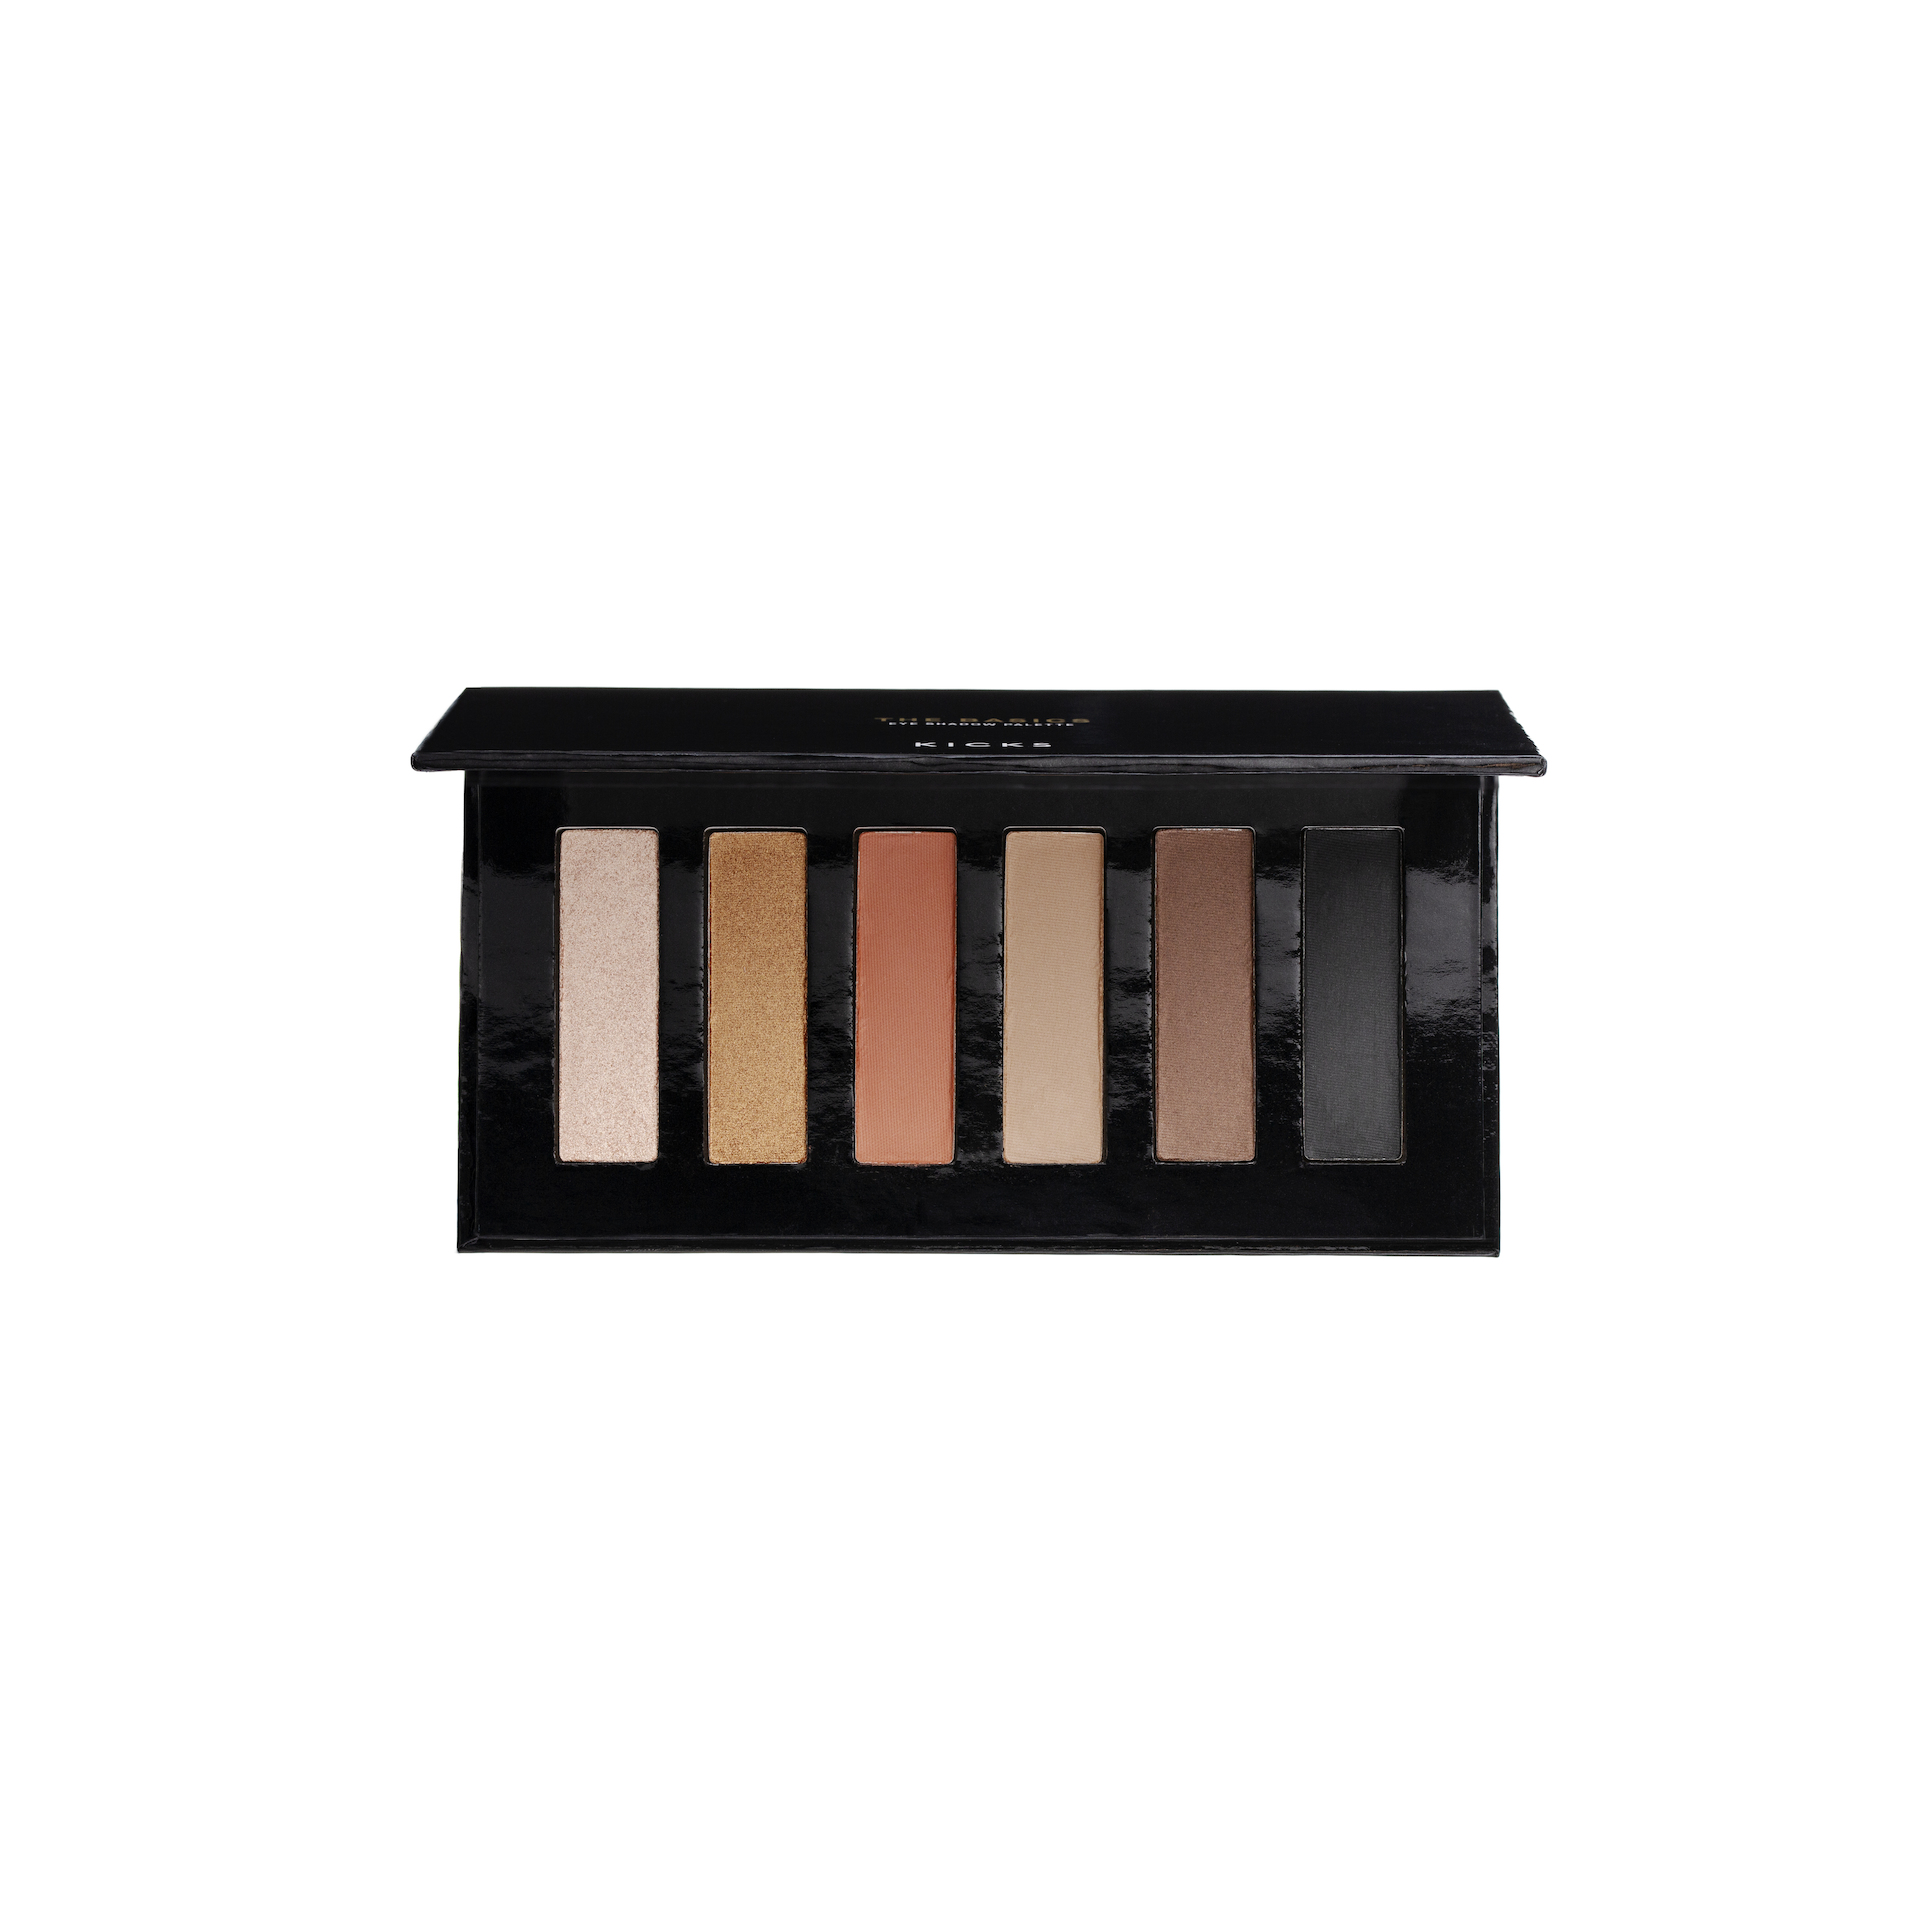 The Basics Eyeshadow Palette